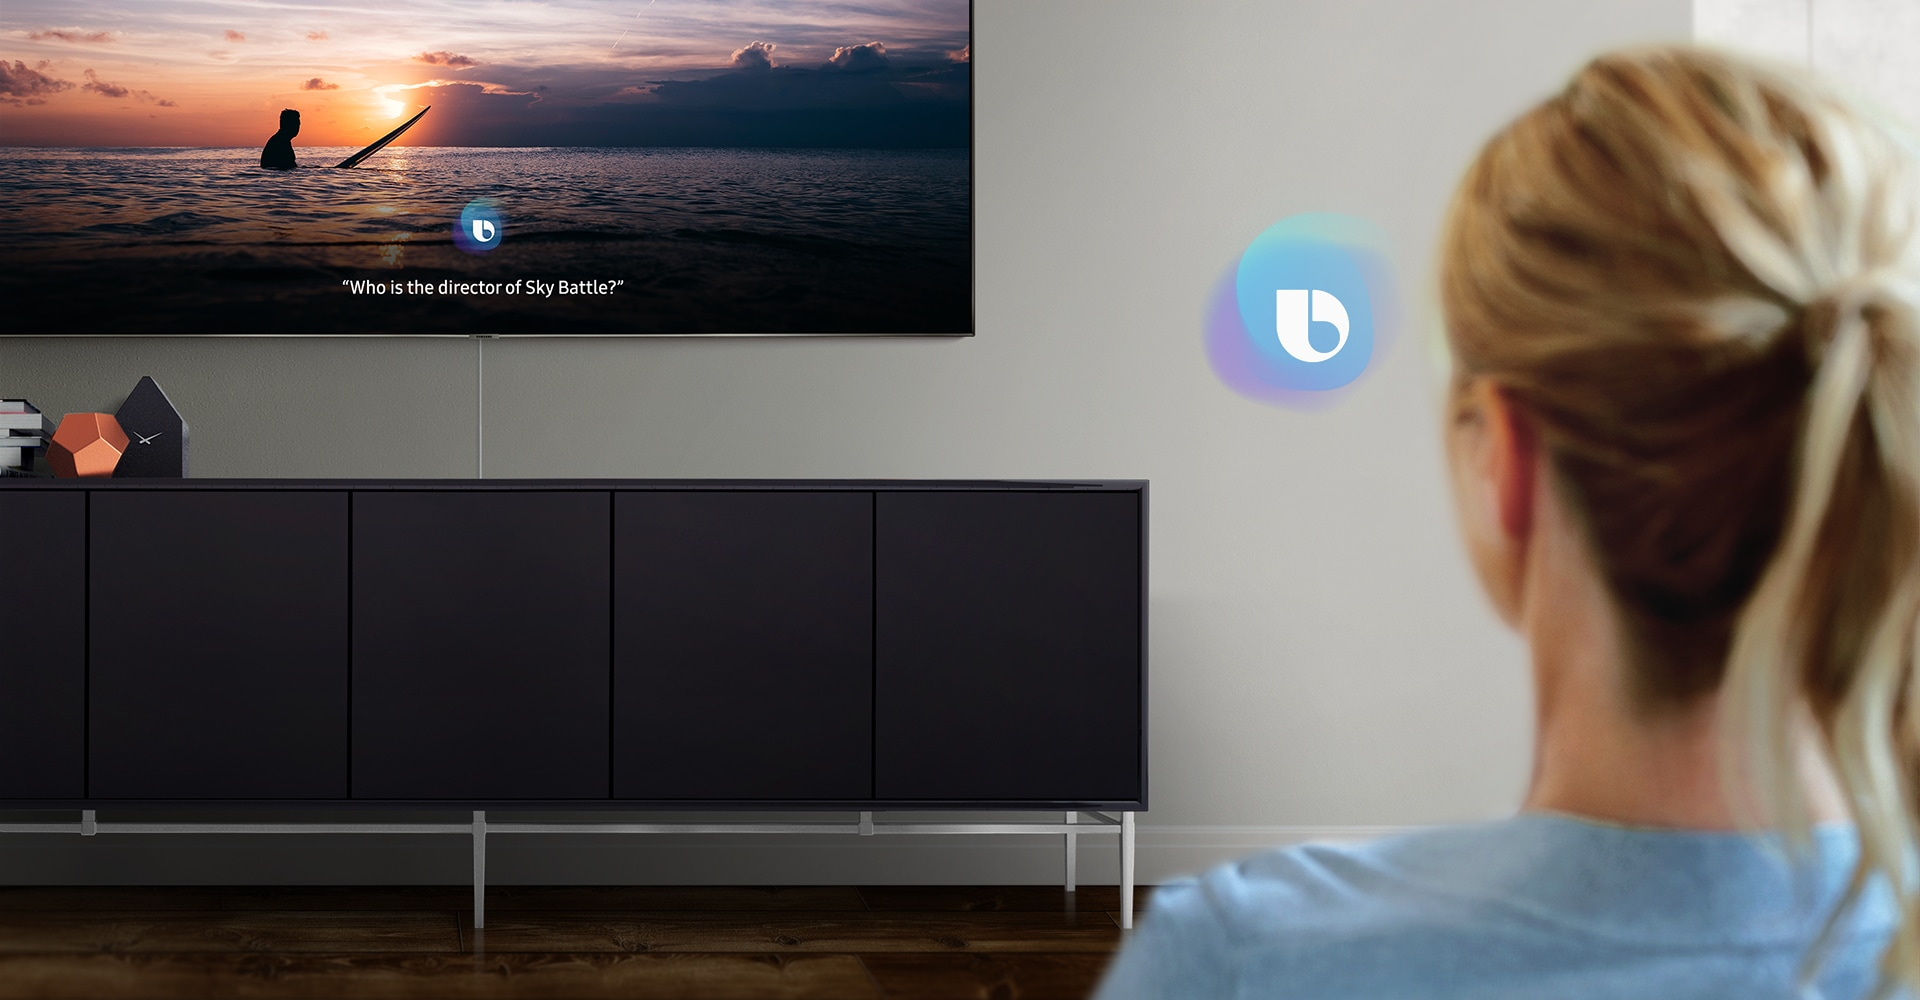 2019 QLED TV displaying a screen in Samsung Bixby mode. A woman is talking with the voice assistant Bixby.